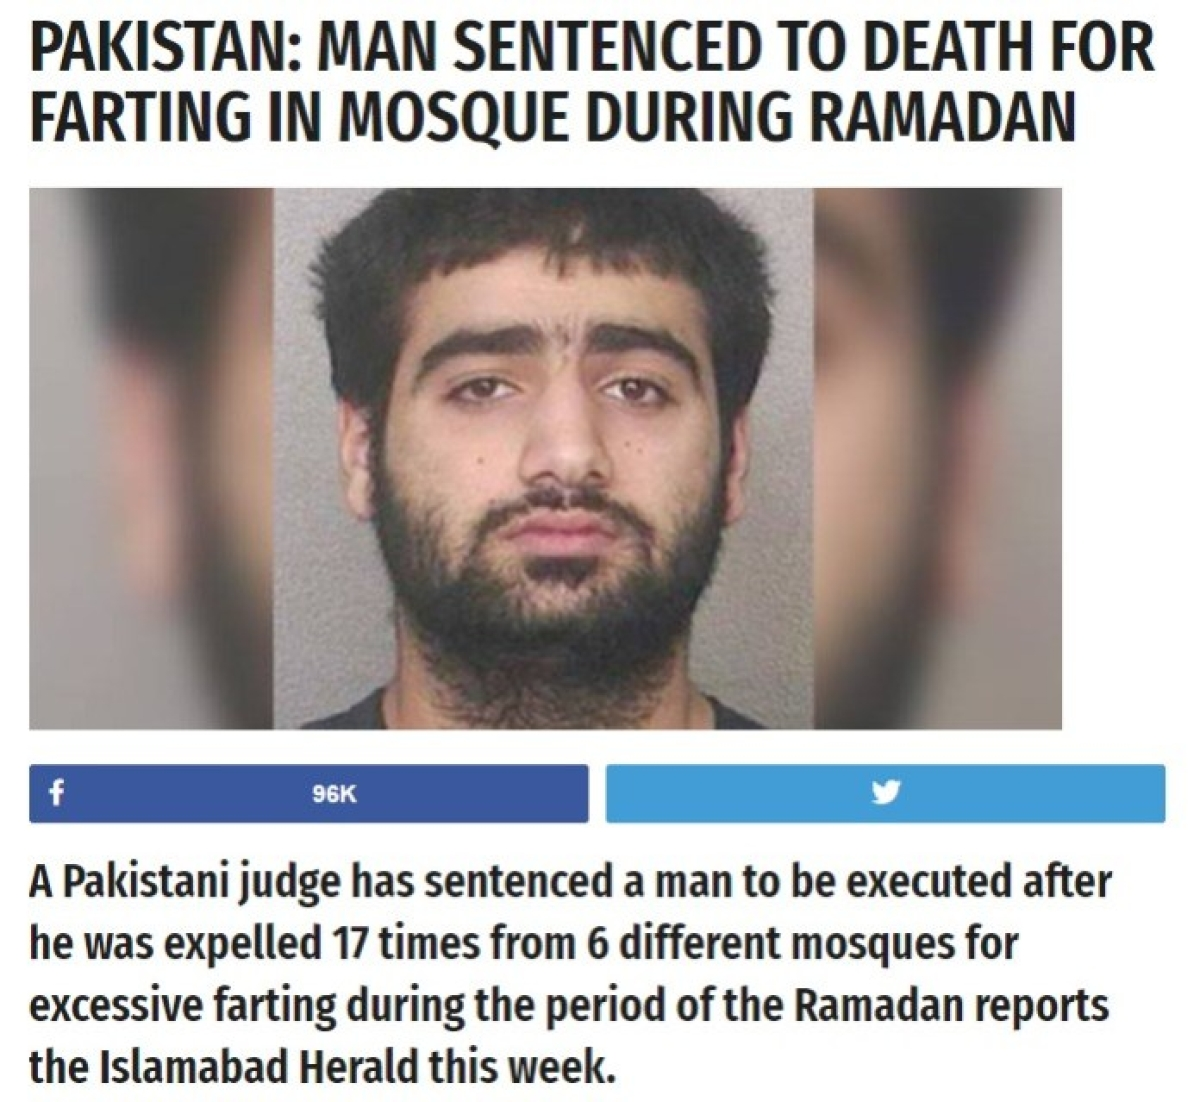 Hoax Alert: Pak Man Sentenced to Death for Farting Was Satire - The